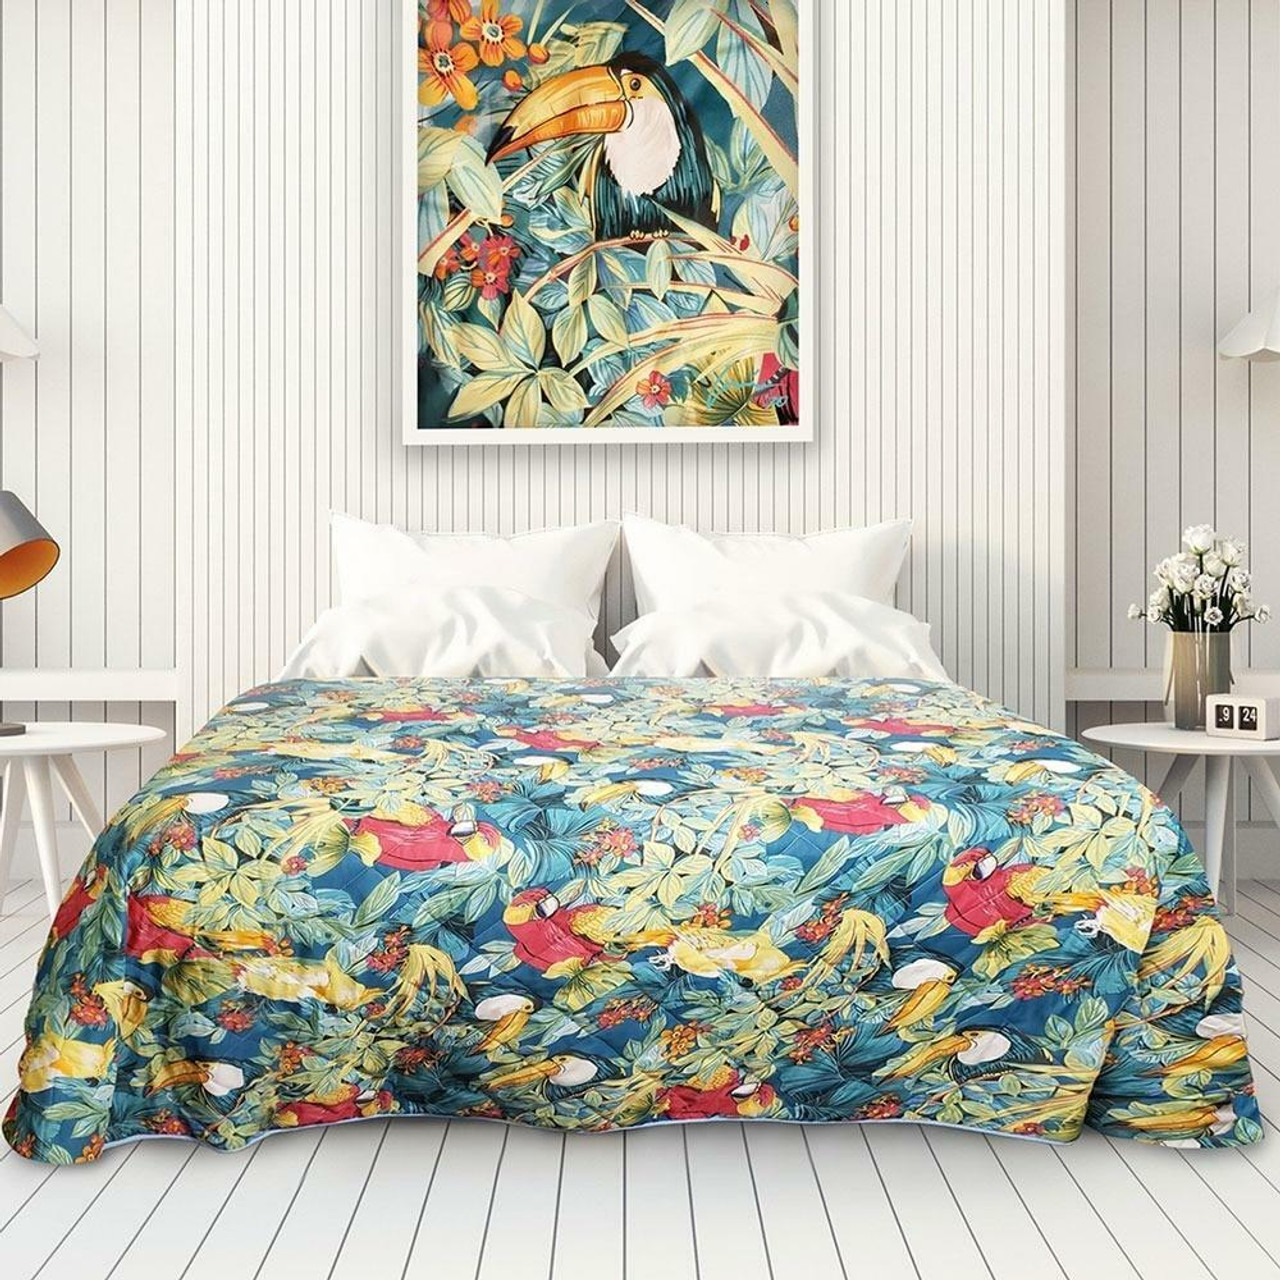 Oxford Super Blend by Ganesh Mills PARADISE TEQUILA SUNRISE PRINTED BEDSPREAD